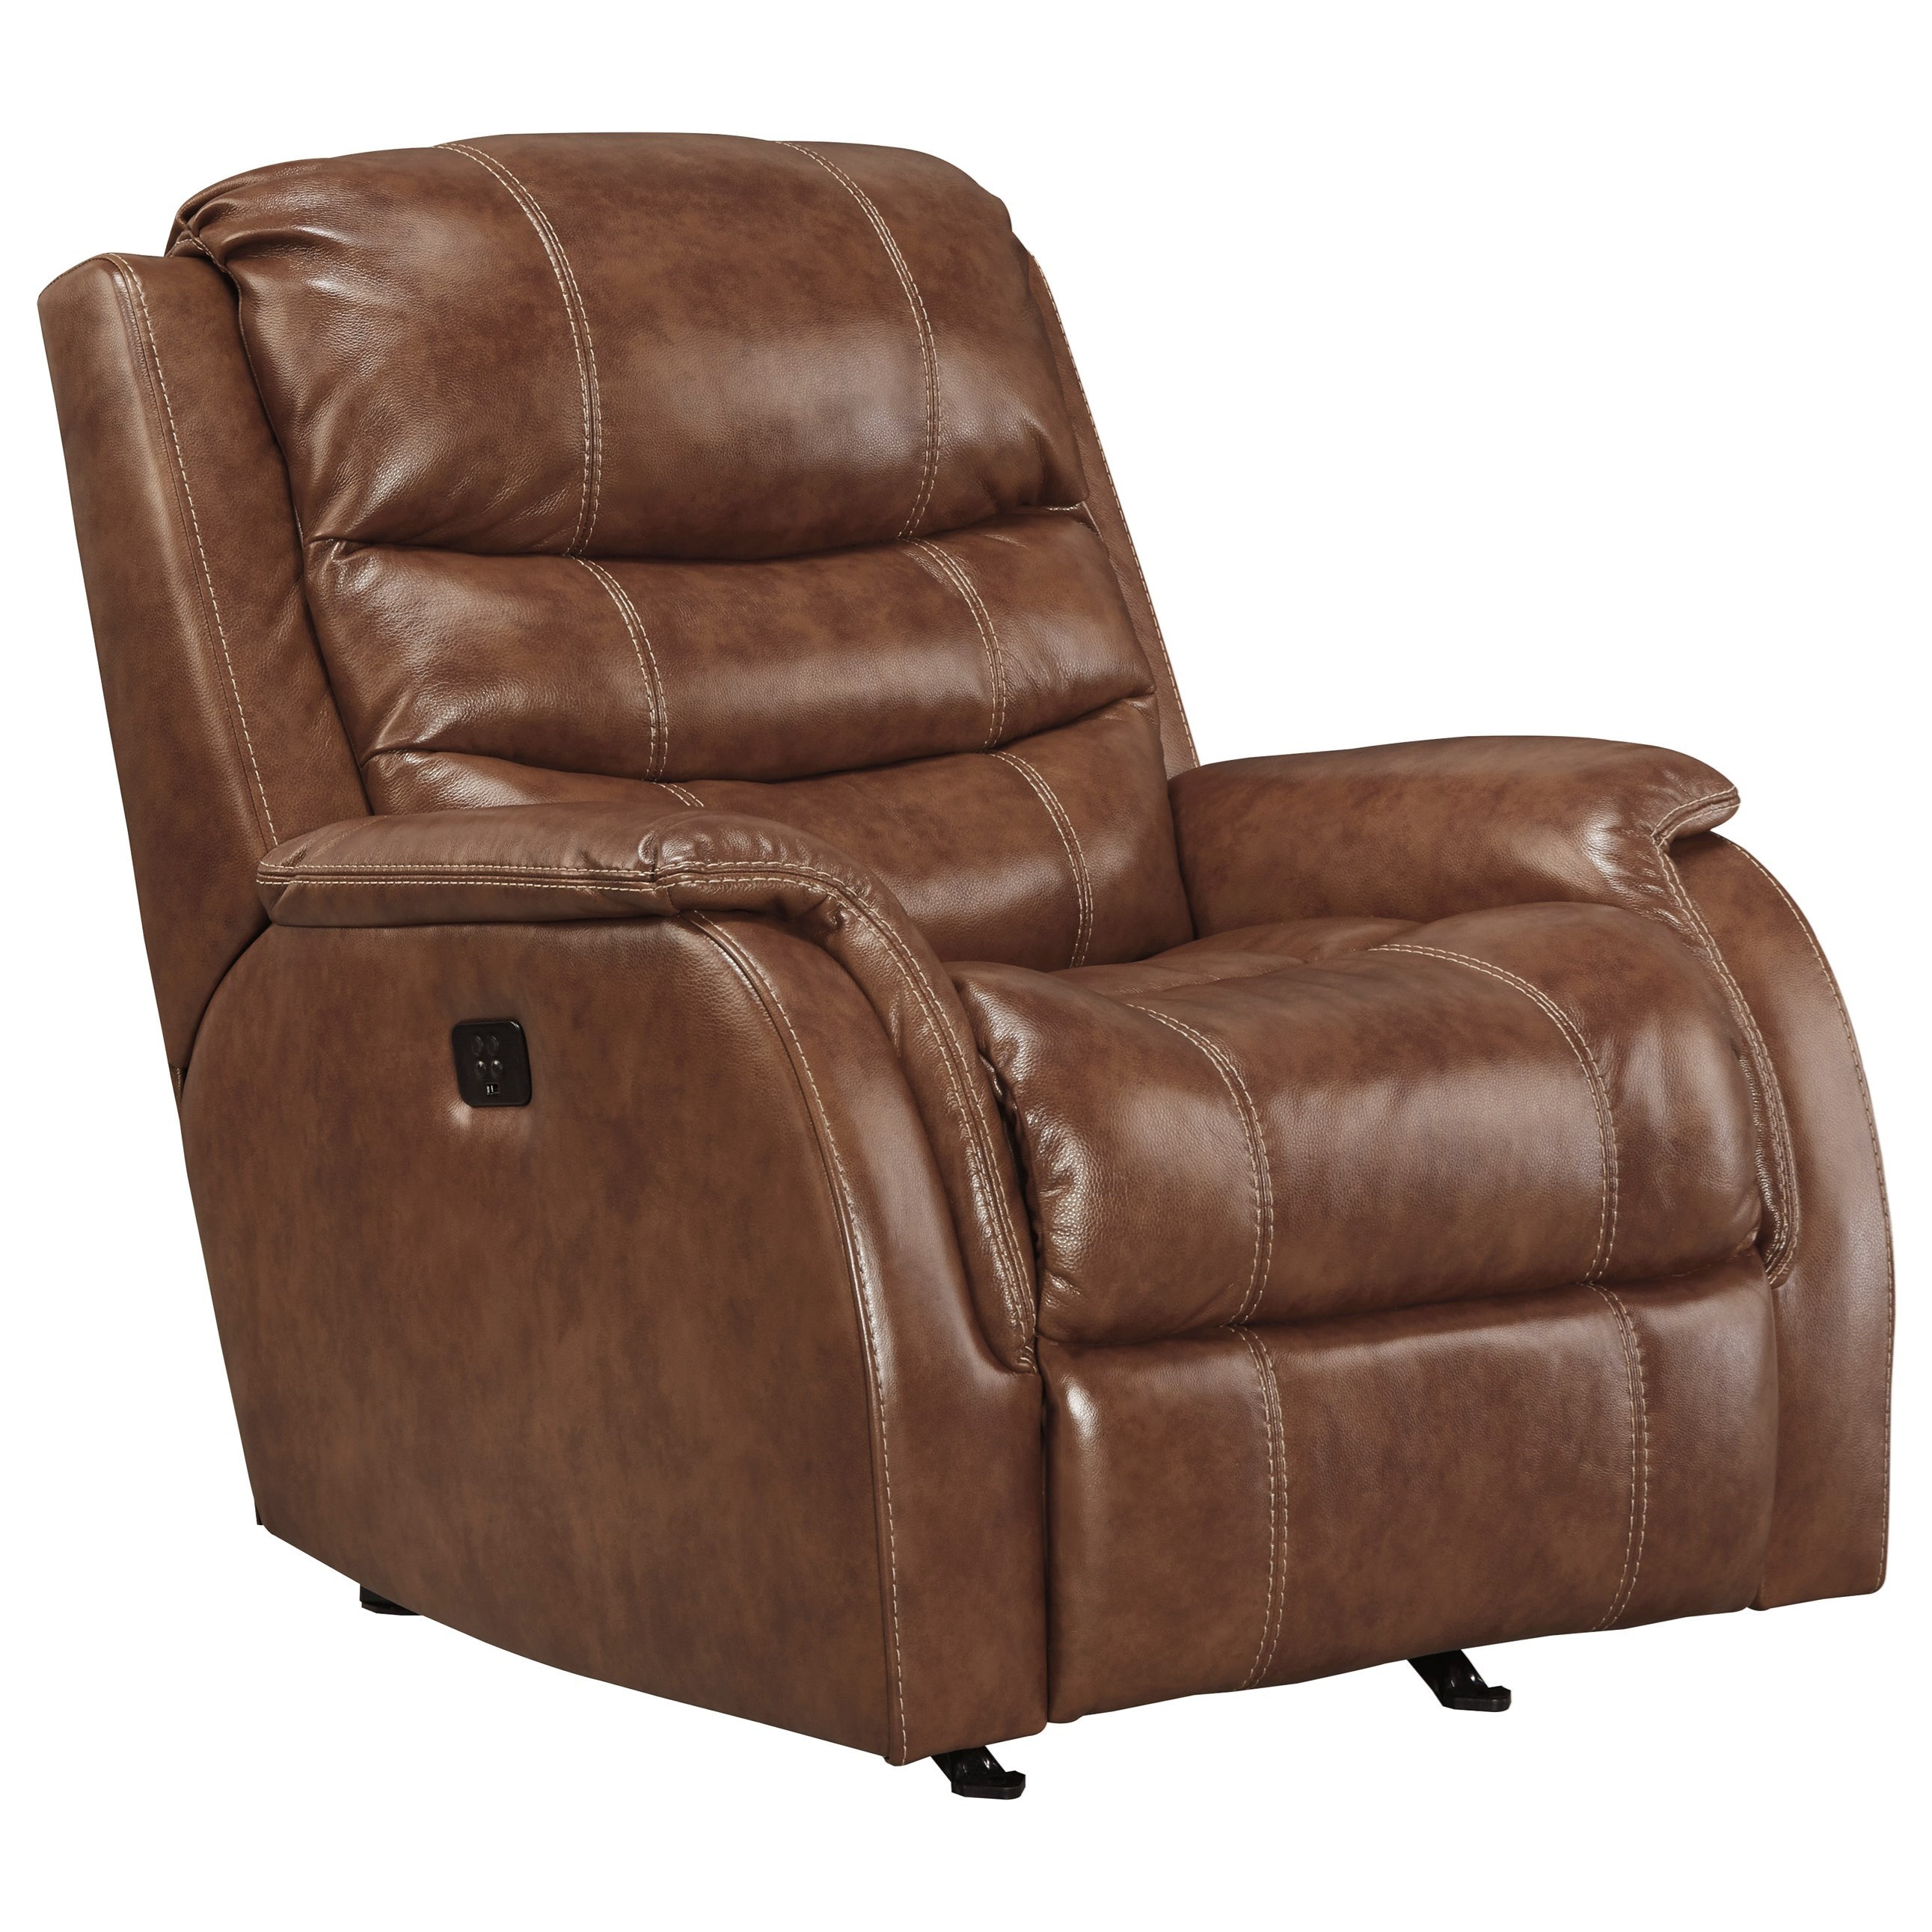 Signature Design by Ashley Metcalf Power Rocker Recliner w/ Adjustable Headrest - Item Number: 5090313